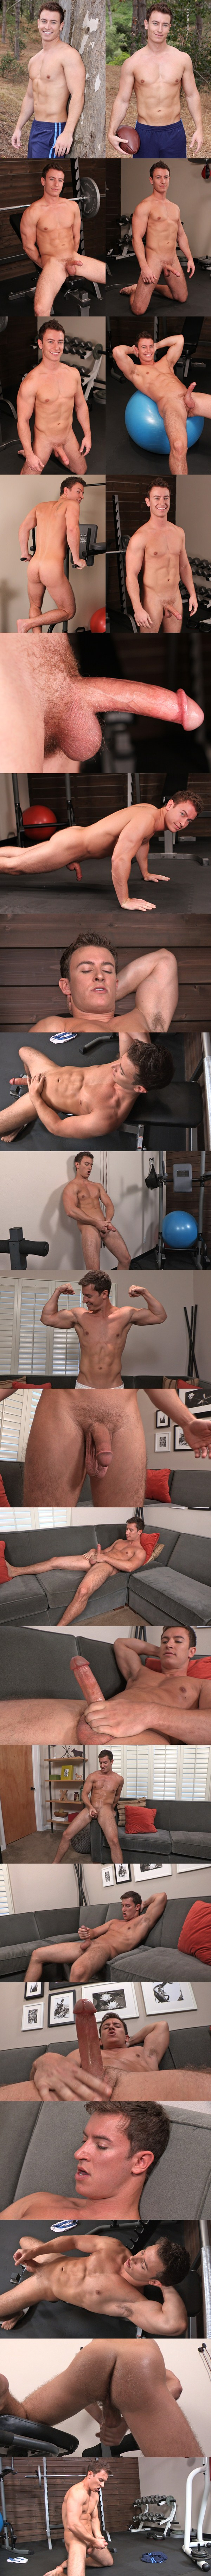 Handsome muscle jock Dwight busts a nut at Seancody 01